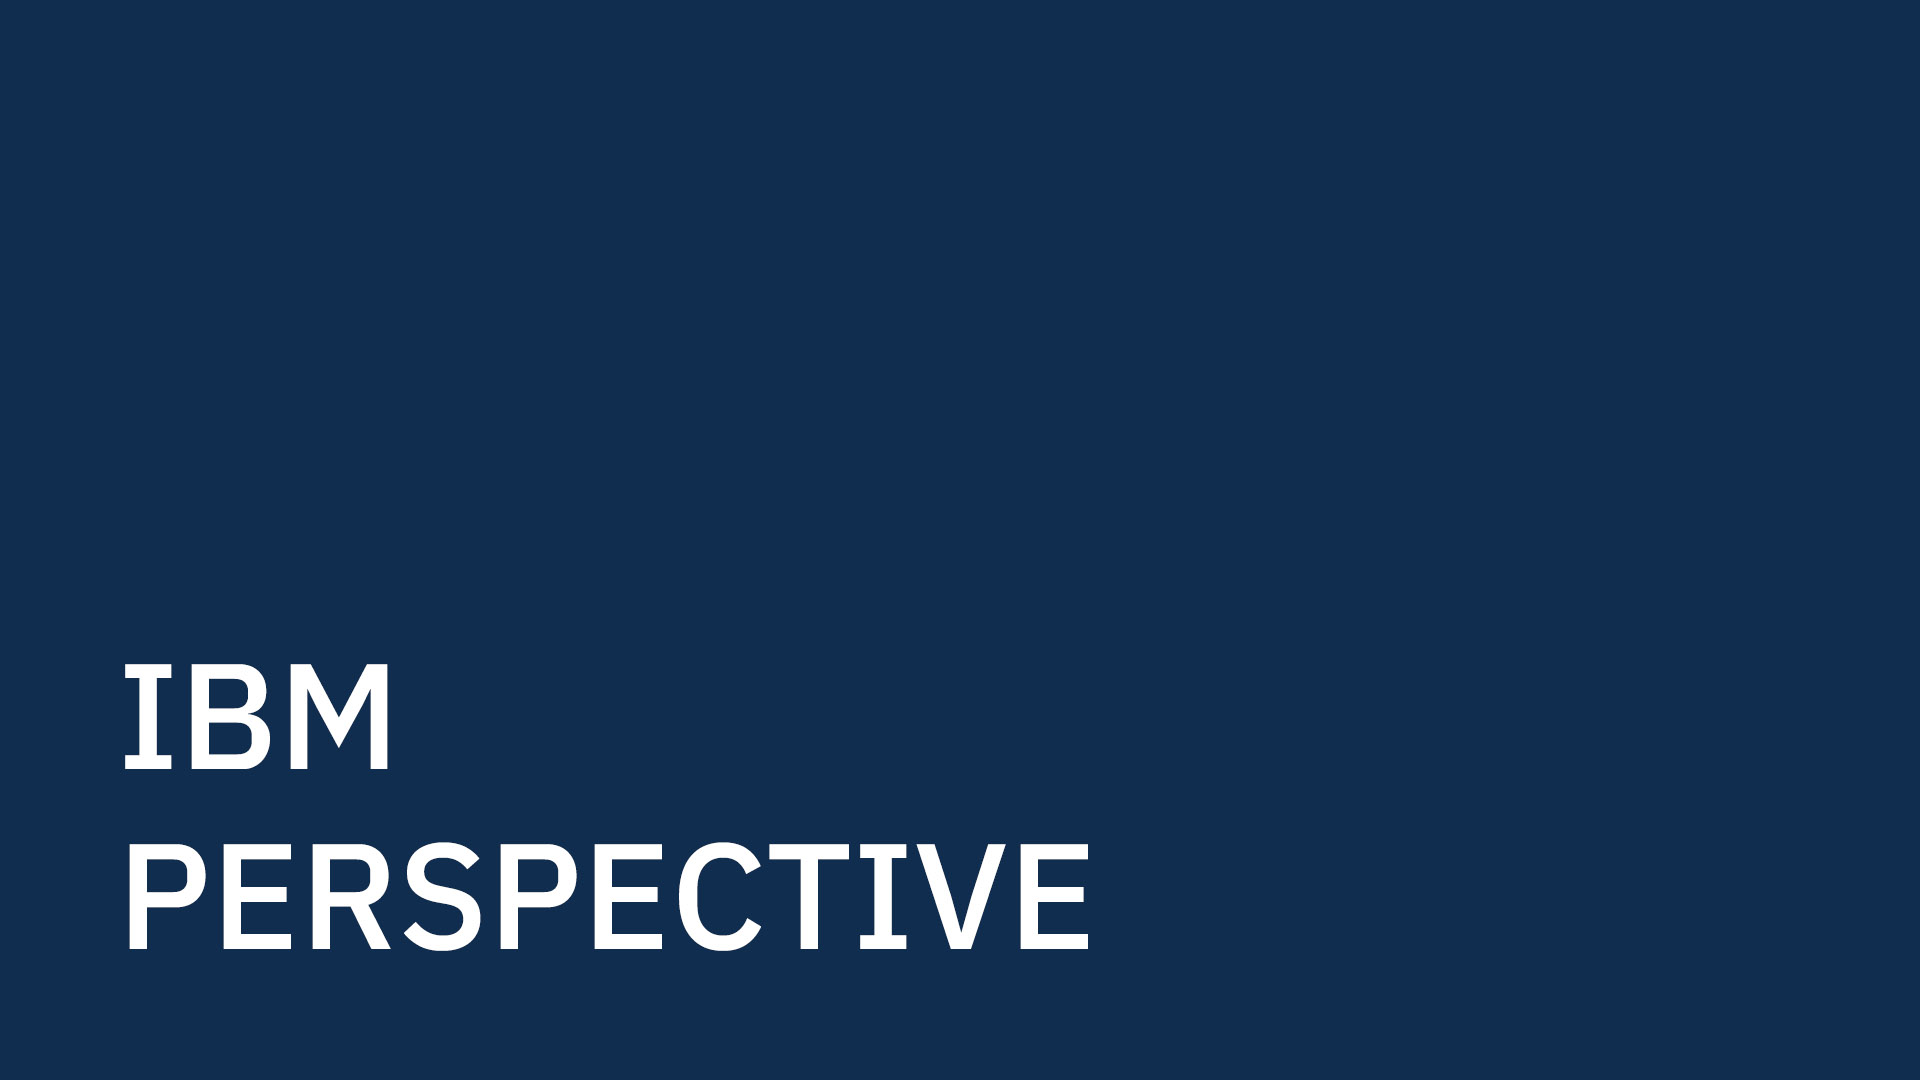 IBM Perspective text in white on navy blue background.